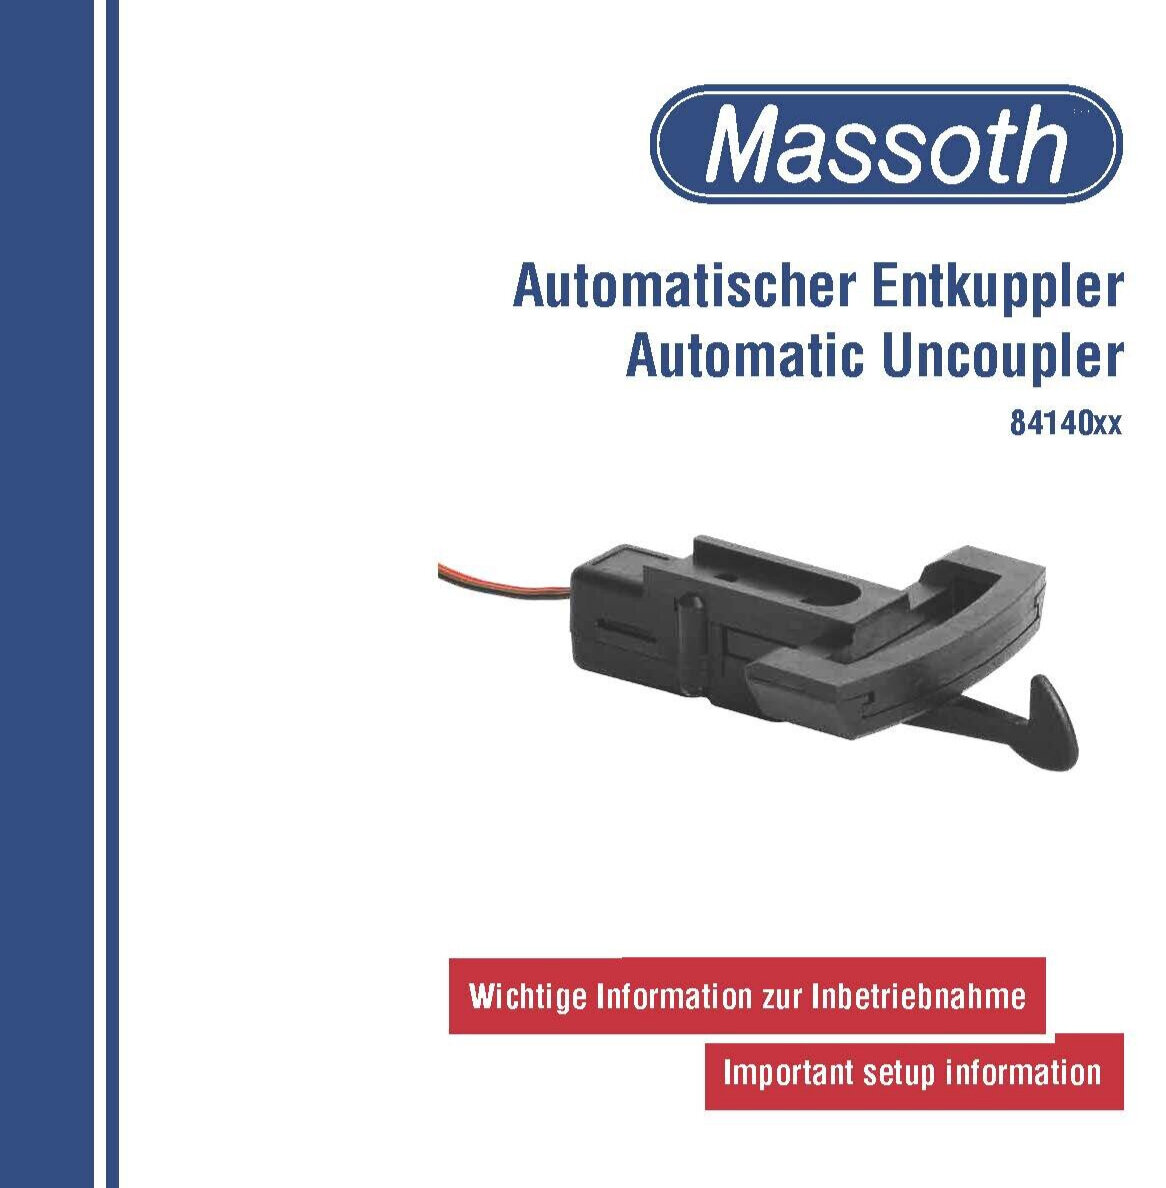 84140xx Massoth Automatic Uncoupler User's Manual 12-08